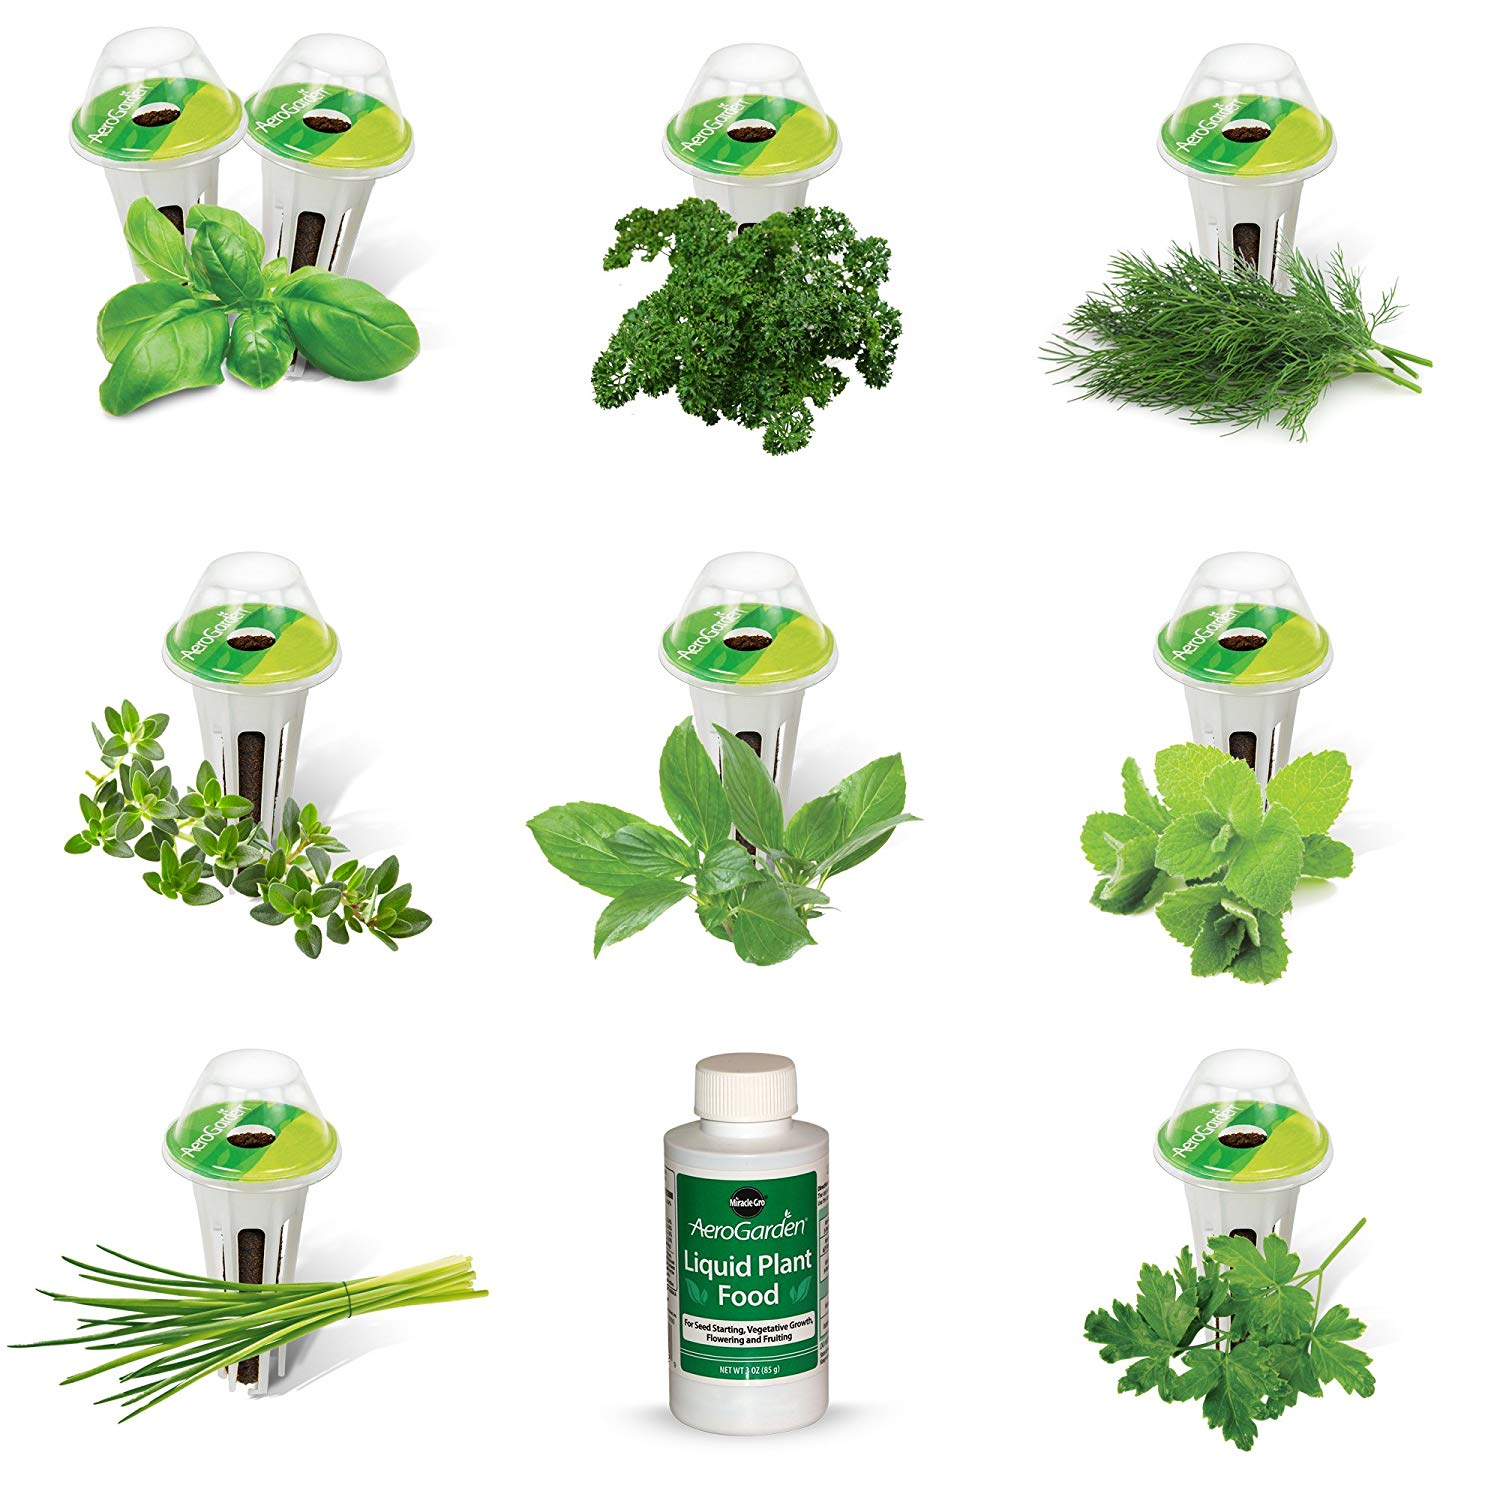 $13.00 AeroGarden Gourmet Herb Seed Pod Kit (9-Pod)  The Gourmet Herbs 9-Pod Seed Kit includes: Genovese Basil (2), Thai Basil, Curly Parsley, Thyme, Chive, Mint, Dill, and Italian Parsley